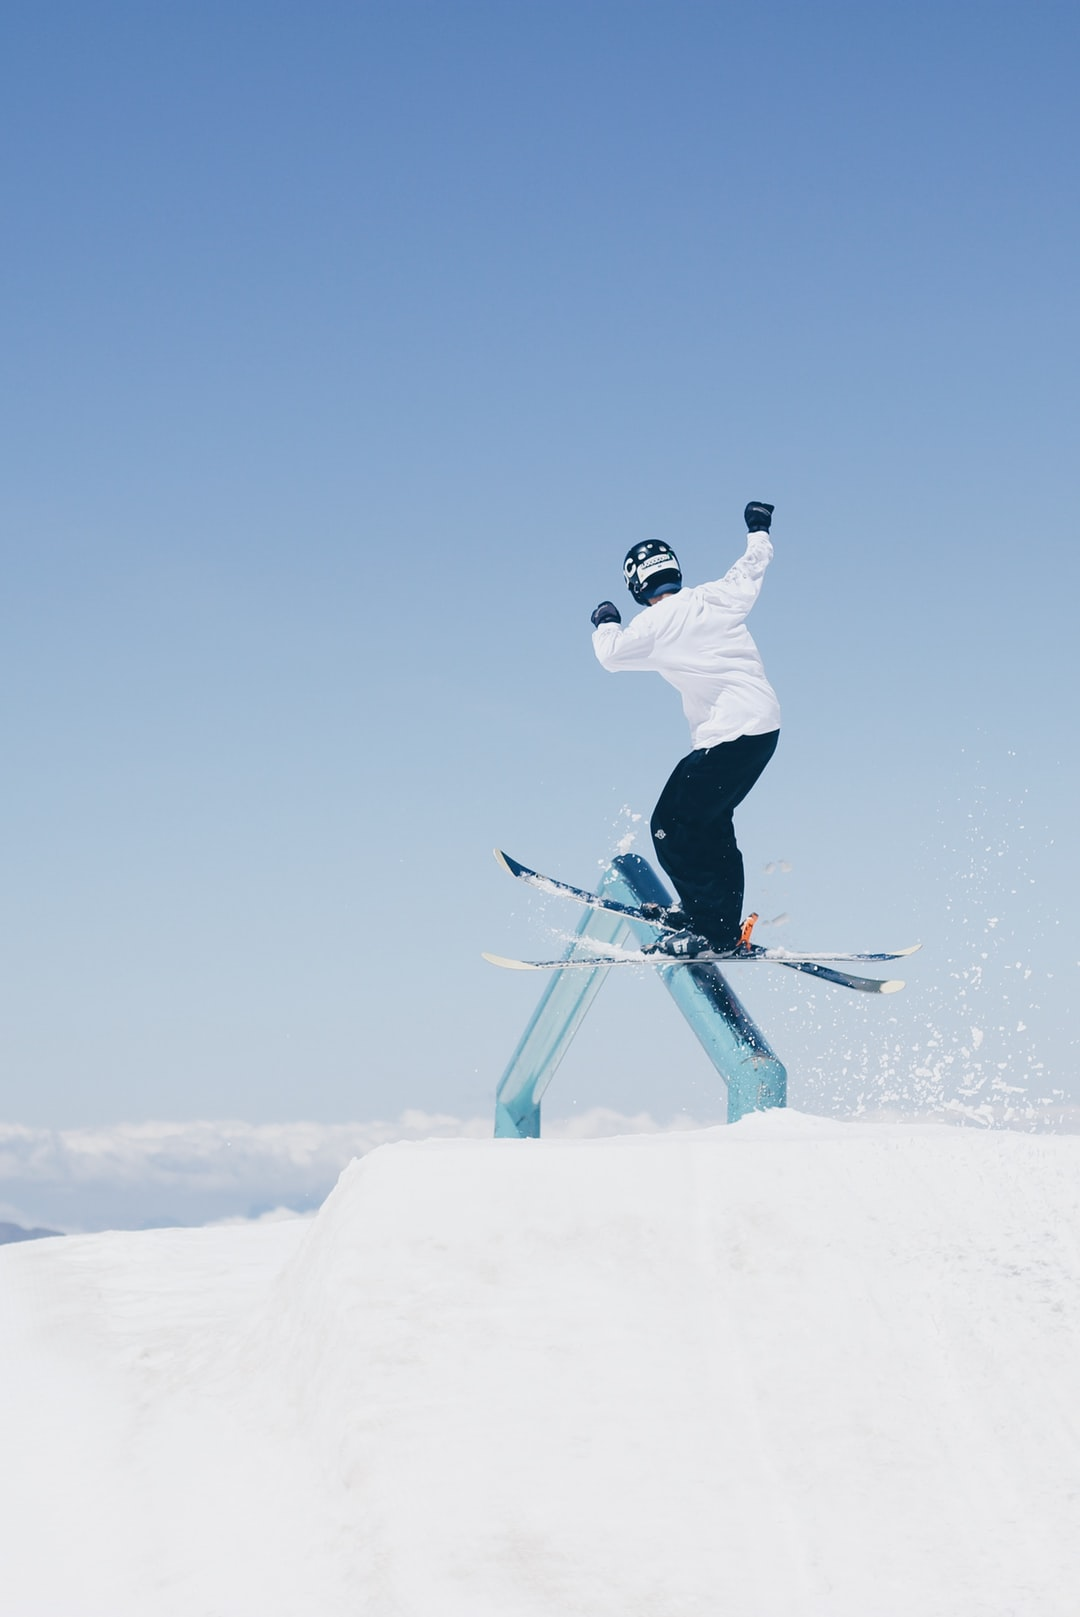 Skier train in the rail in Les Deux Alpes